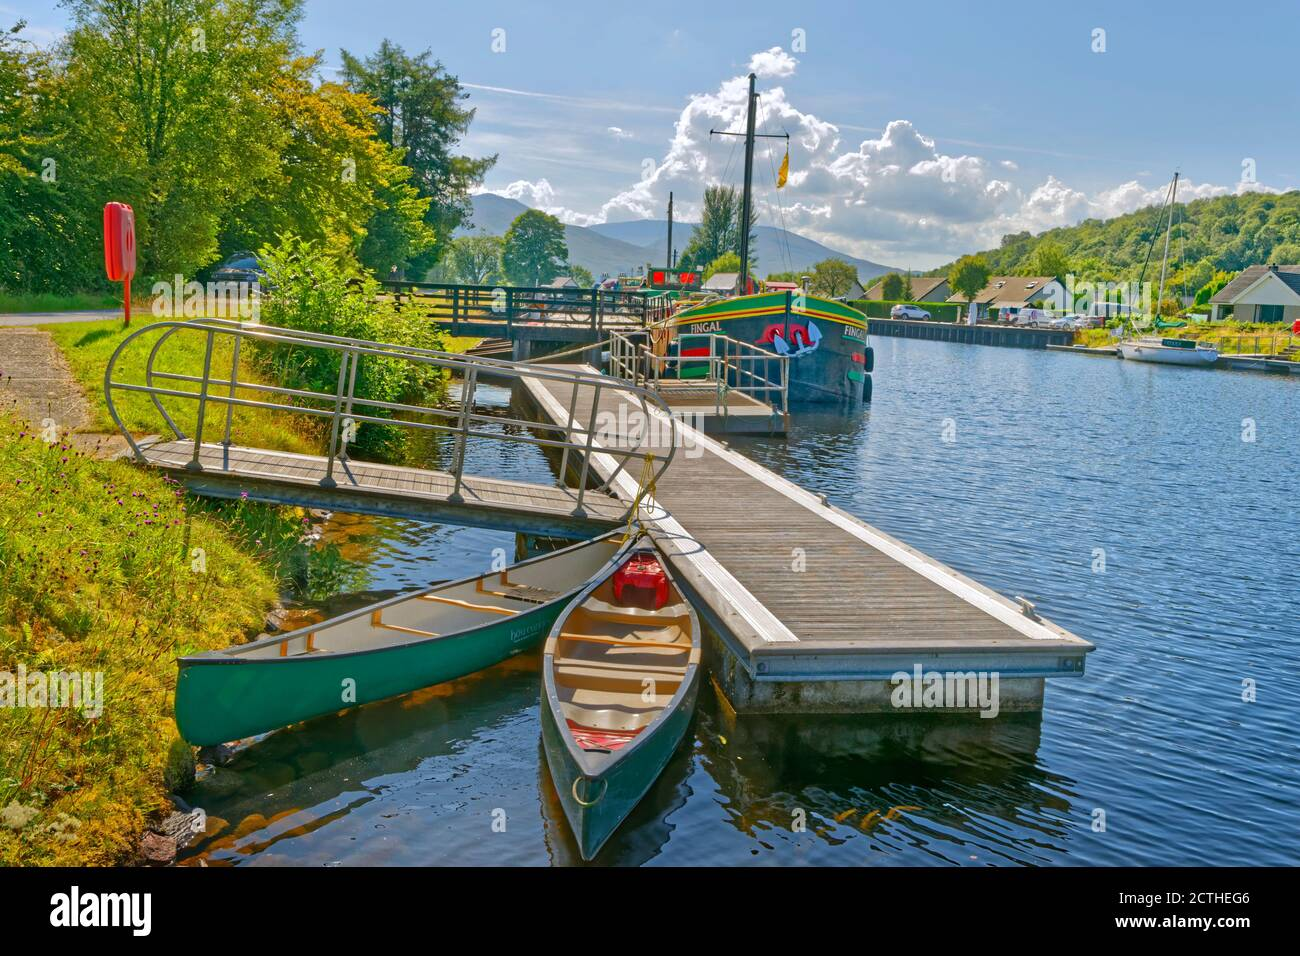 The southern end of the Caledonian Canal at Fort William, Scotland. Stock Photo